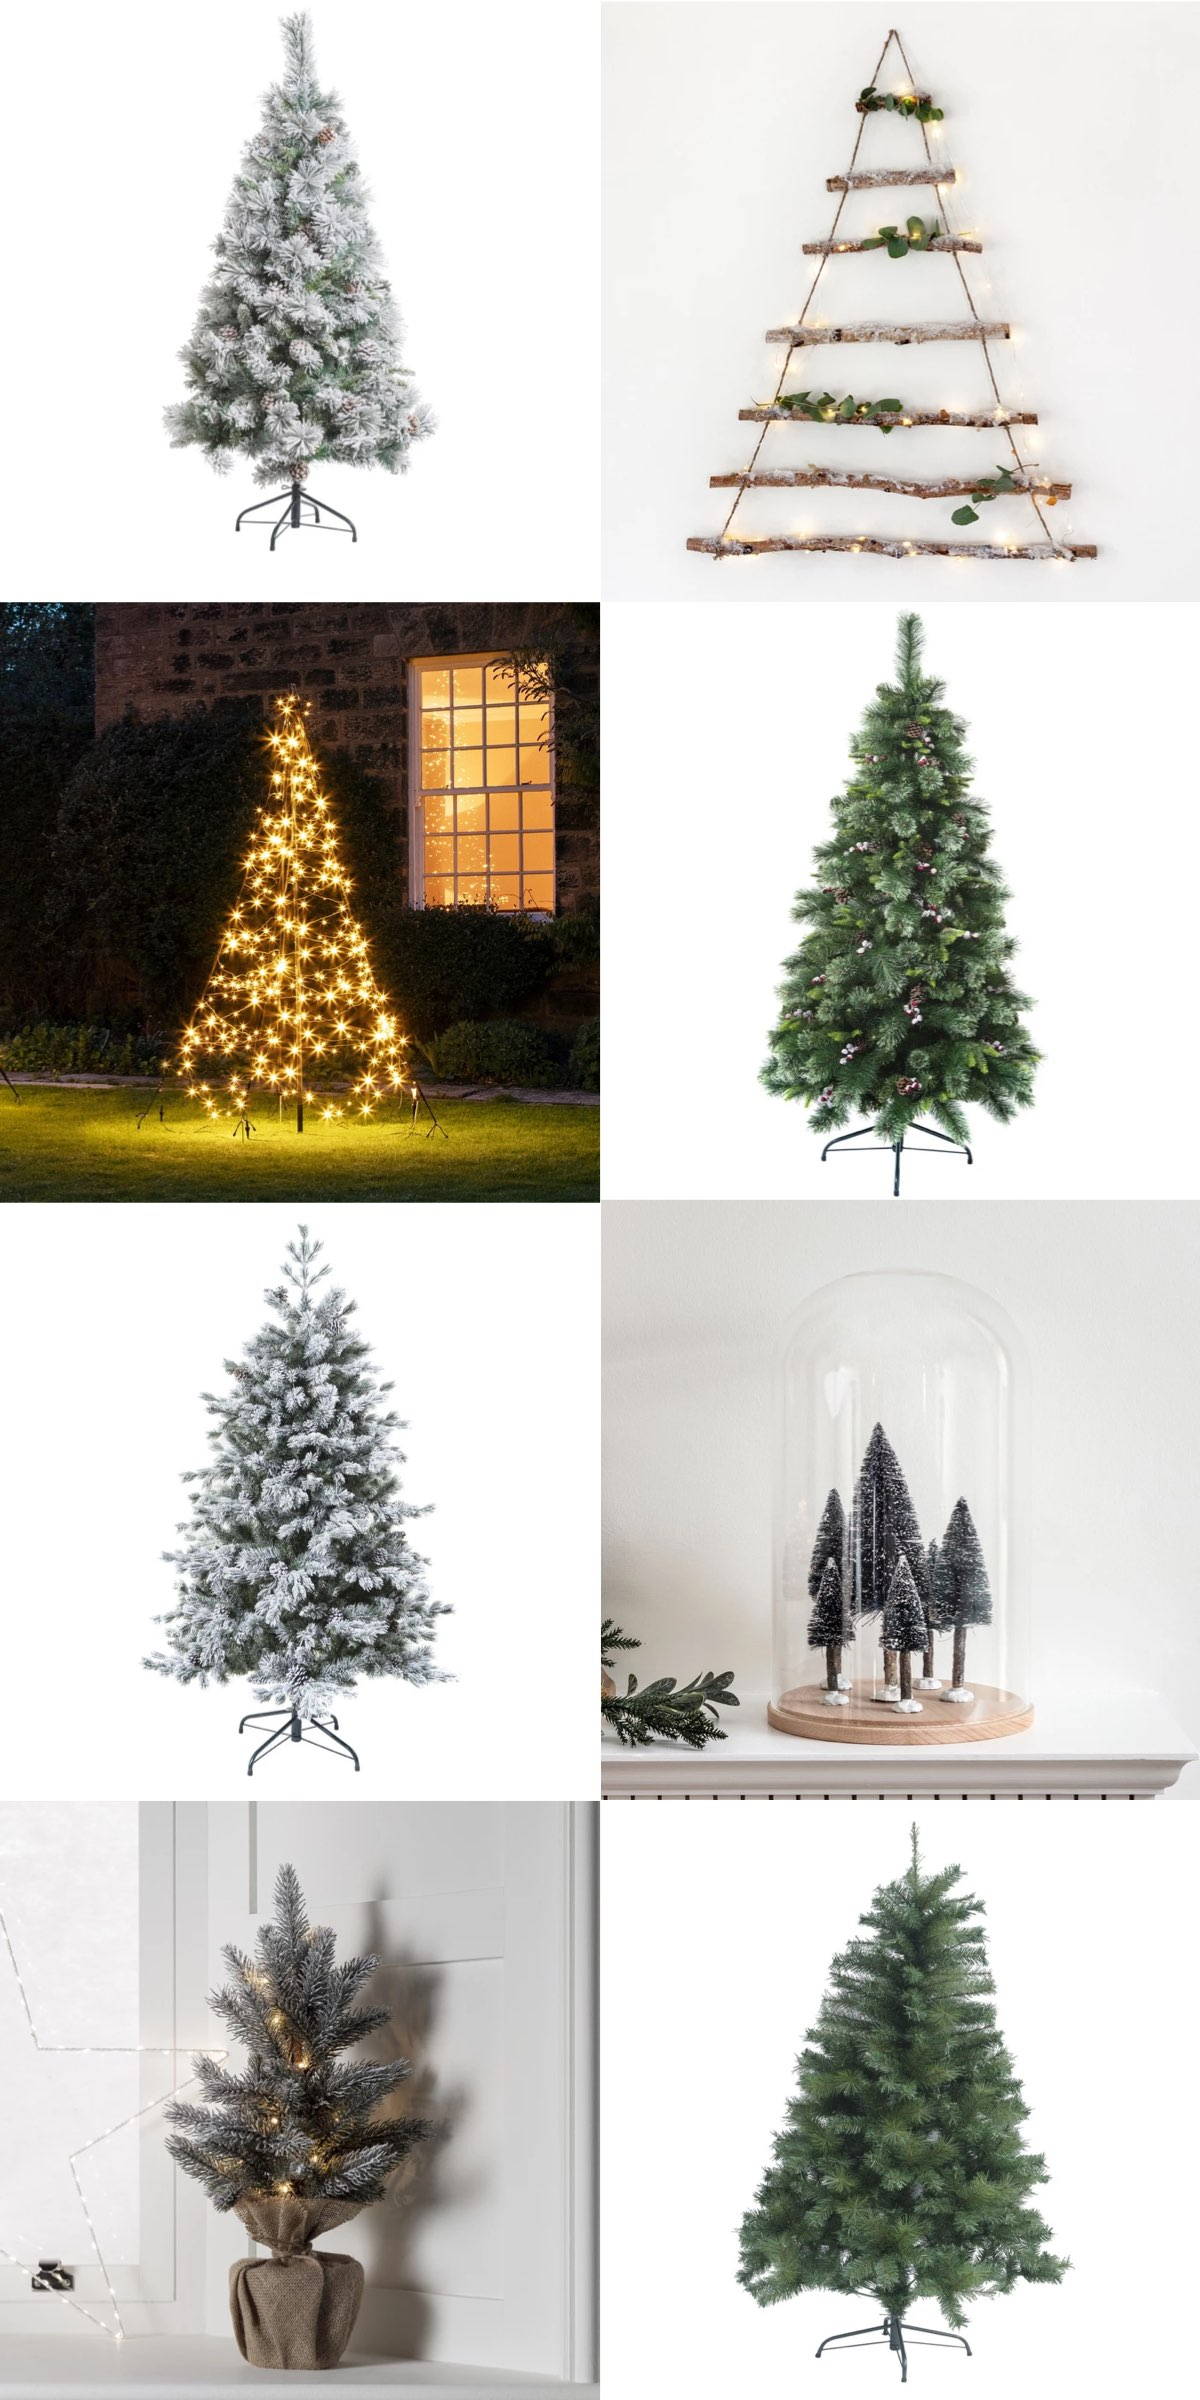 sapin artificiel dense grand beau pas cher - blog déco - clem around the corner